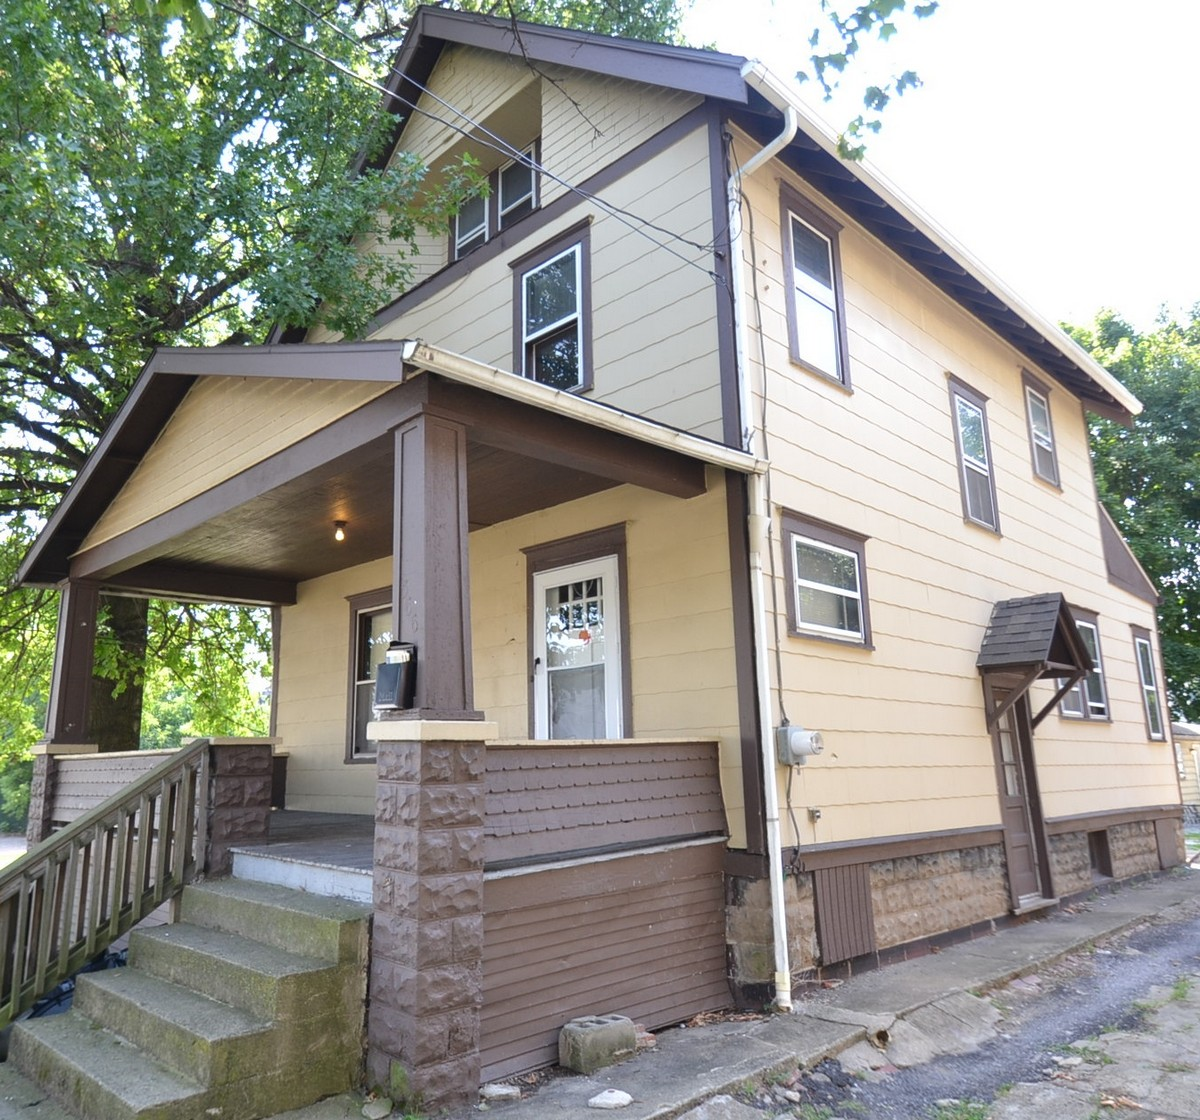 graduate ln apt 4 raleigh nc  utilities included. 2 Bedroom Apartments Utilities Included Raleigh Nc  621 W South St